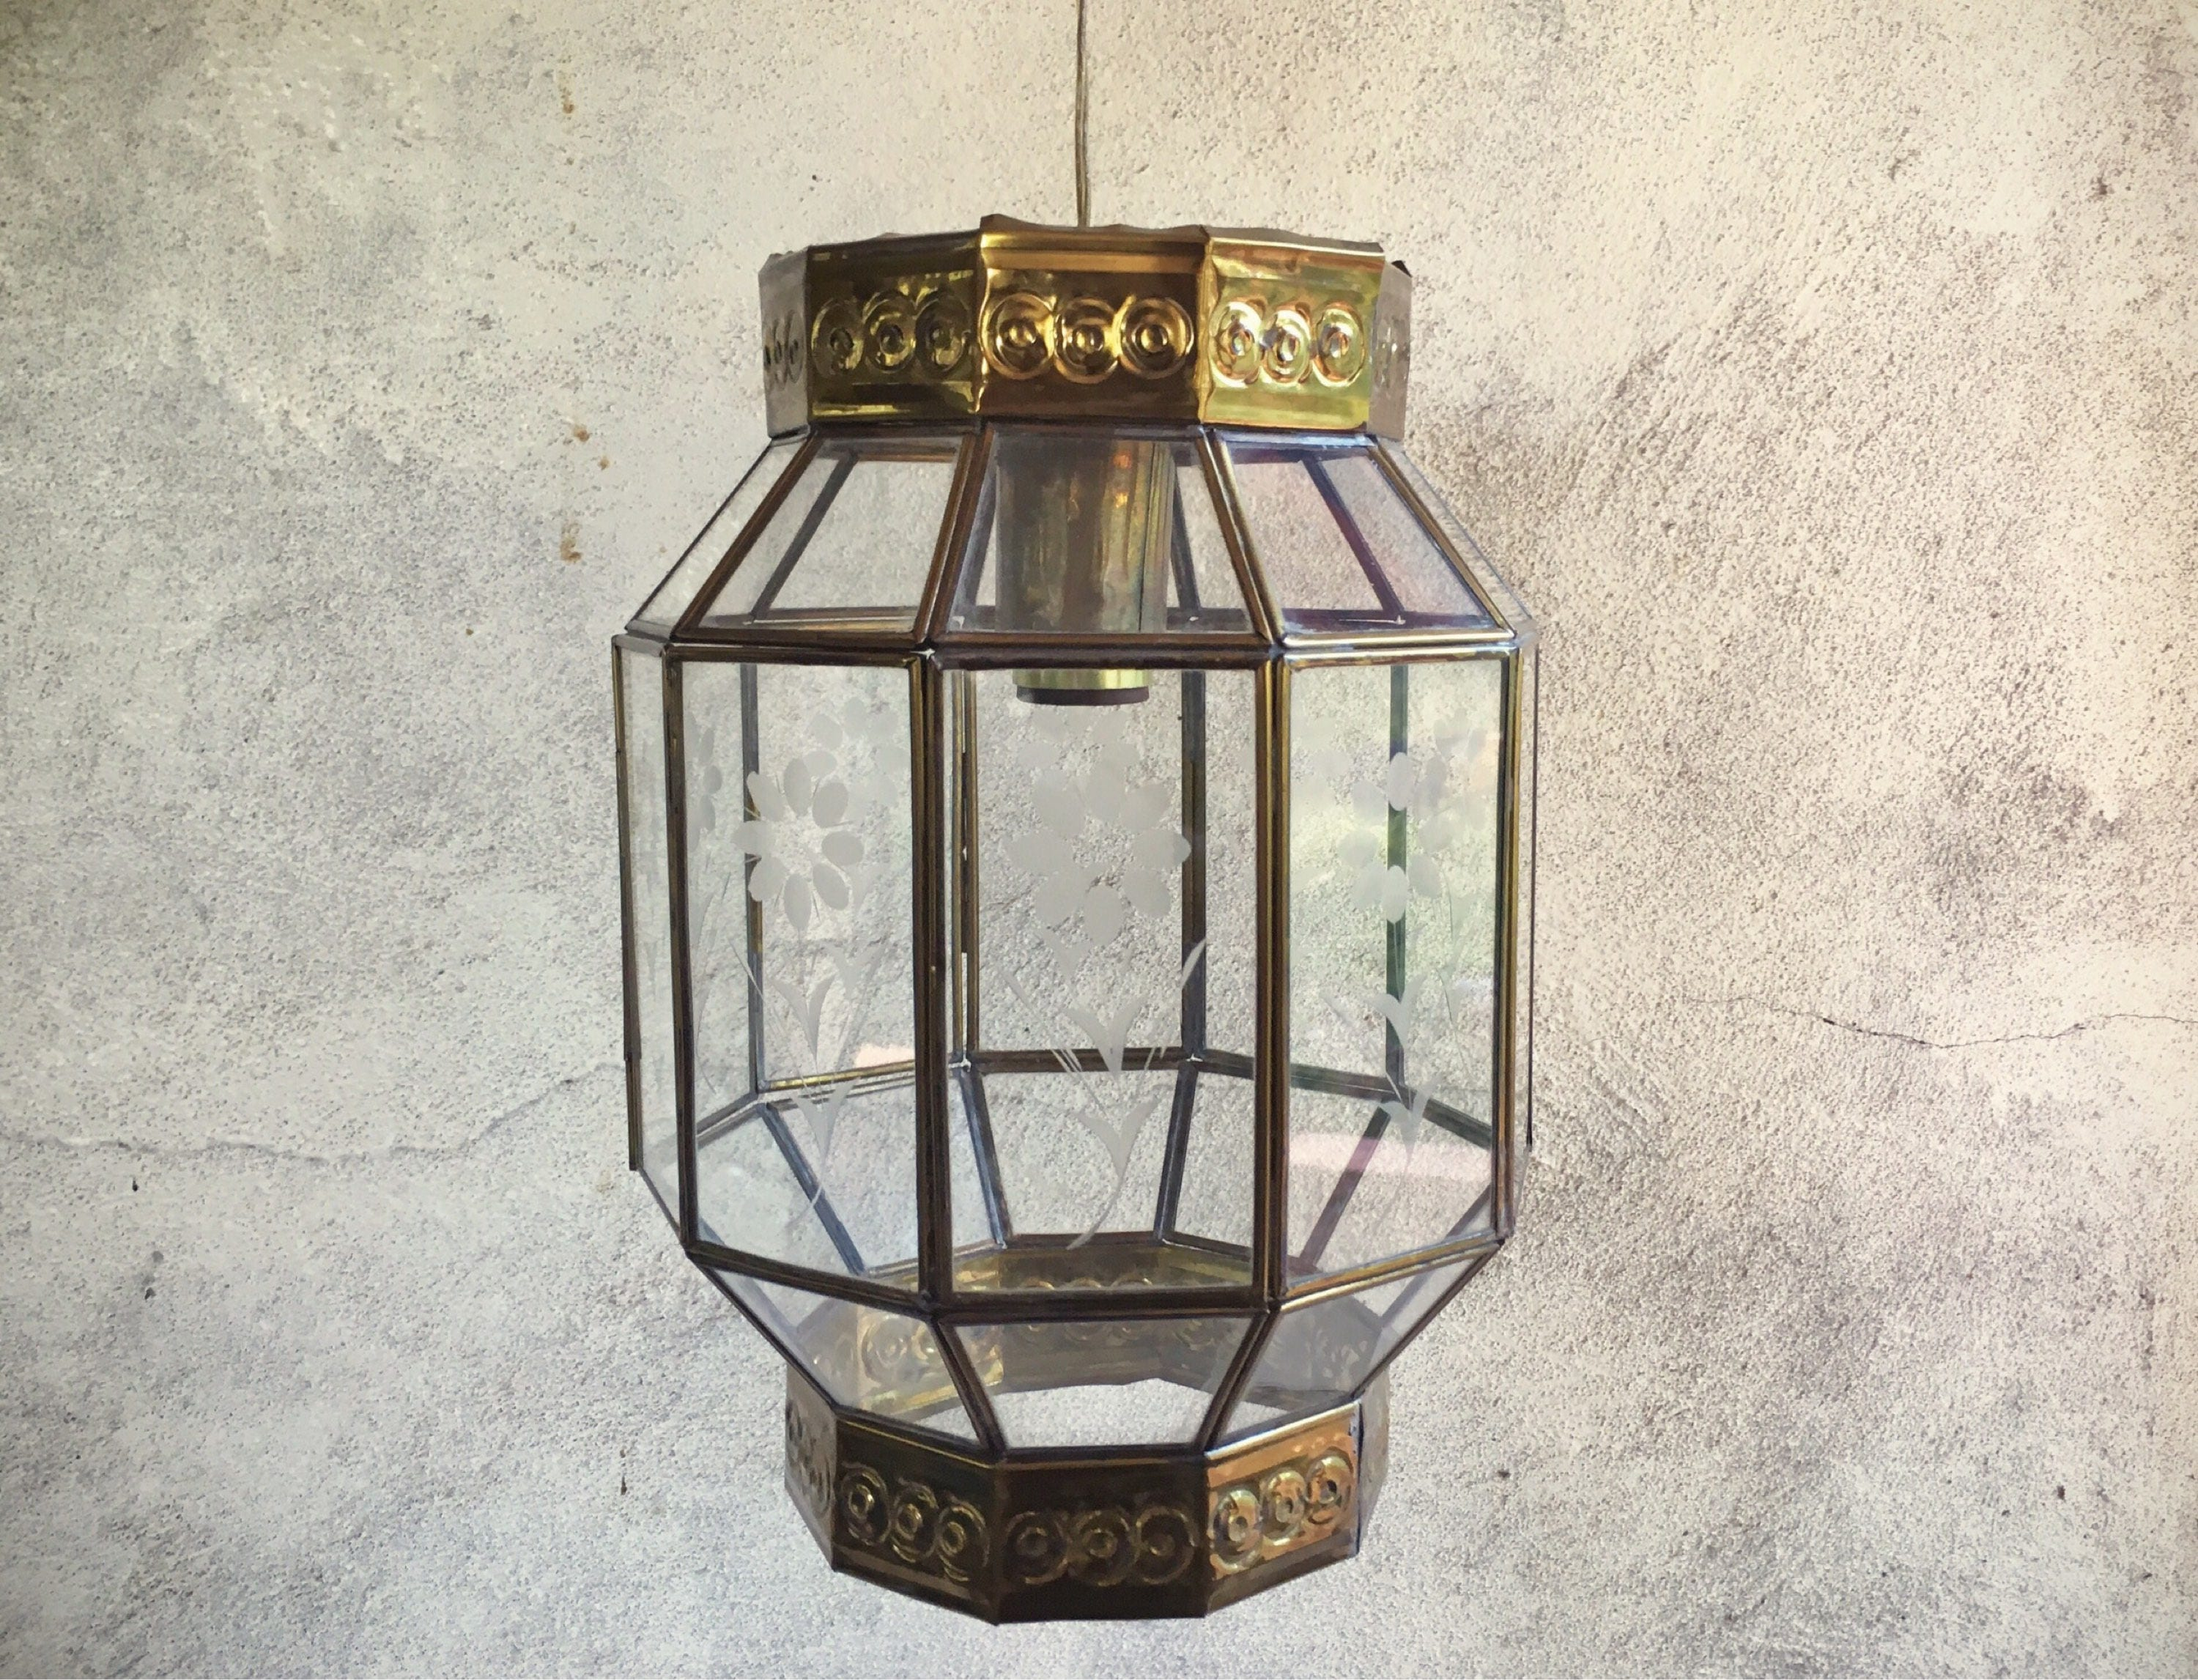 Vintage mexican etched glass brass hanging lamp bohemian decor vintage mexican etched glass brass hanging lamp bohemian decor pendant light fixture pendant lighting mexican chandelier hanging lights arubaitofo Image collections